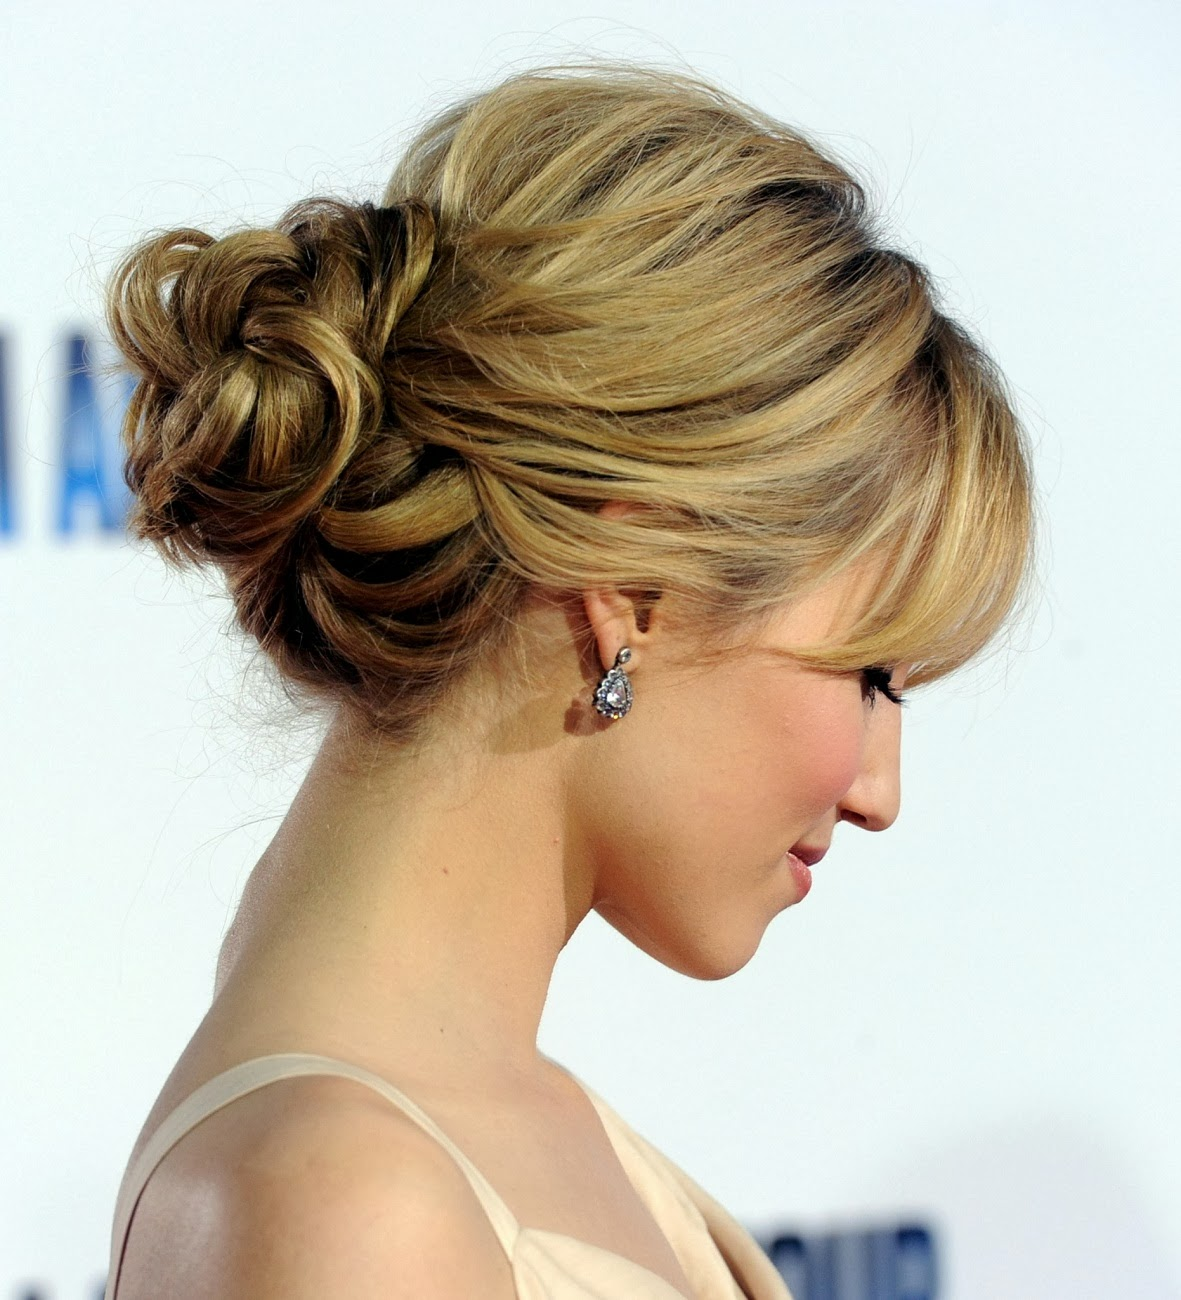 new best hairstyles for long hair for prom : hair fashion